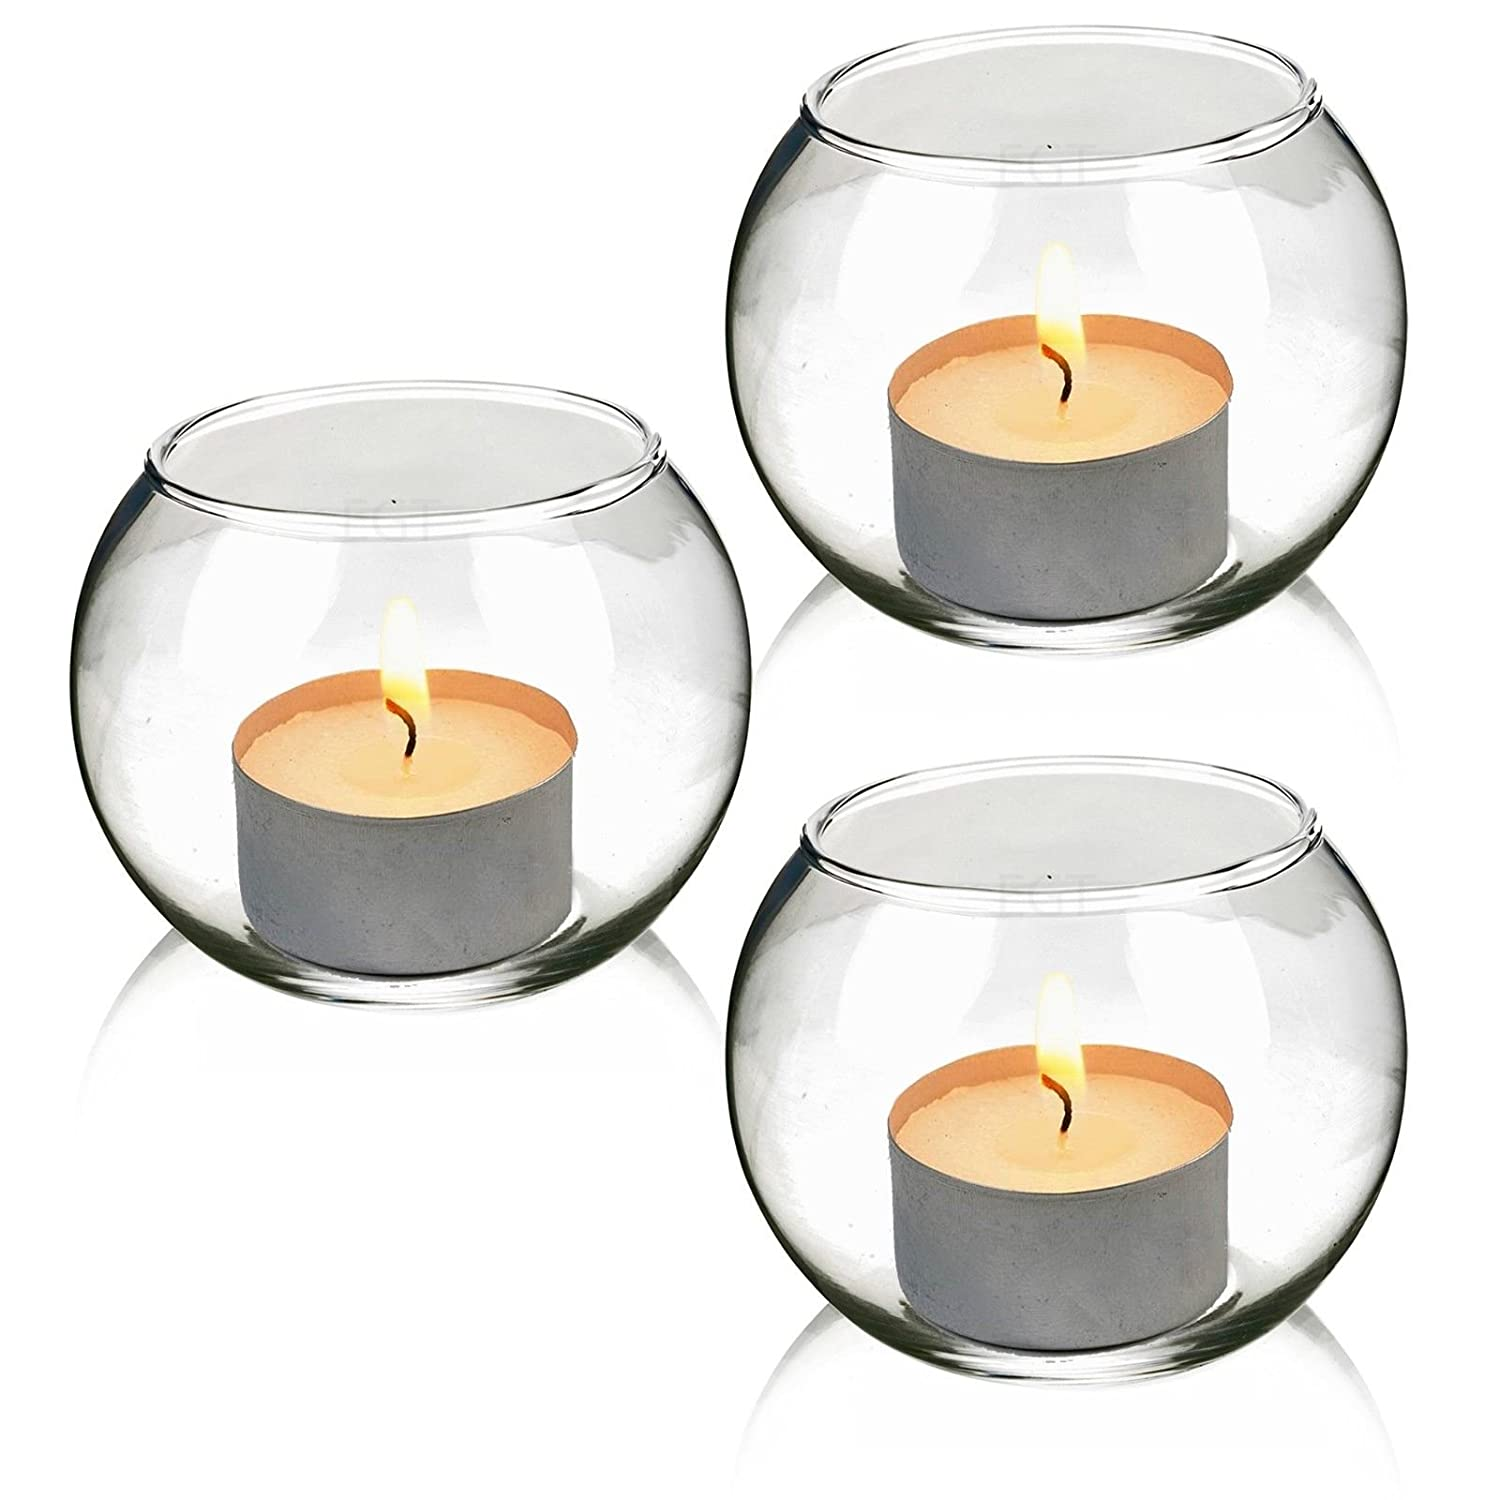 Small Set of 3 Round Glass Candle Holders Verre URBN LIVING /® Lot de 3/ bougeoirs en Verre Ronde